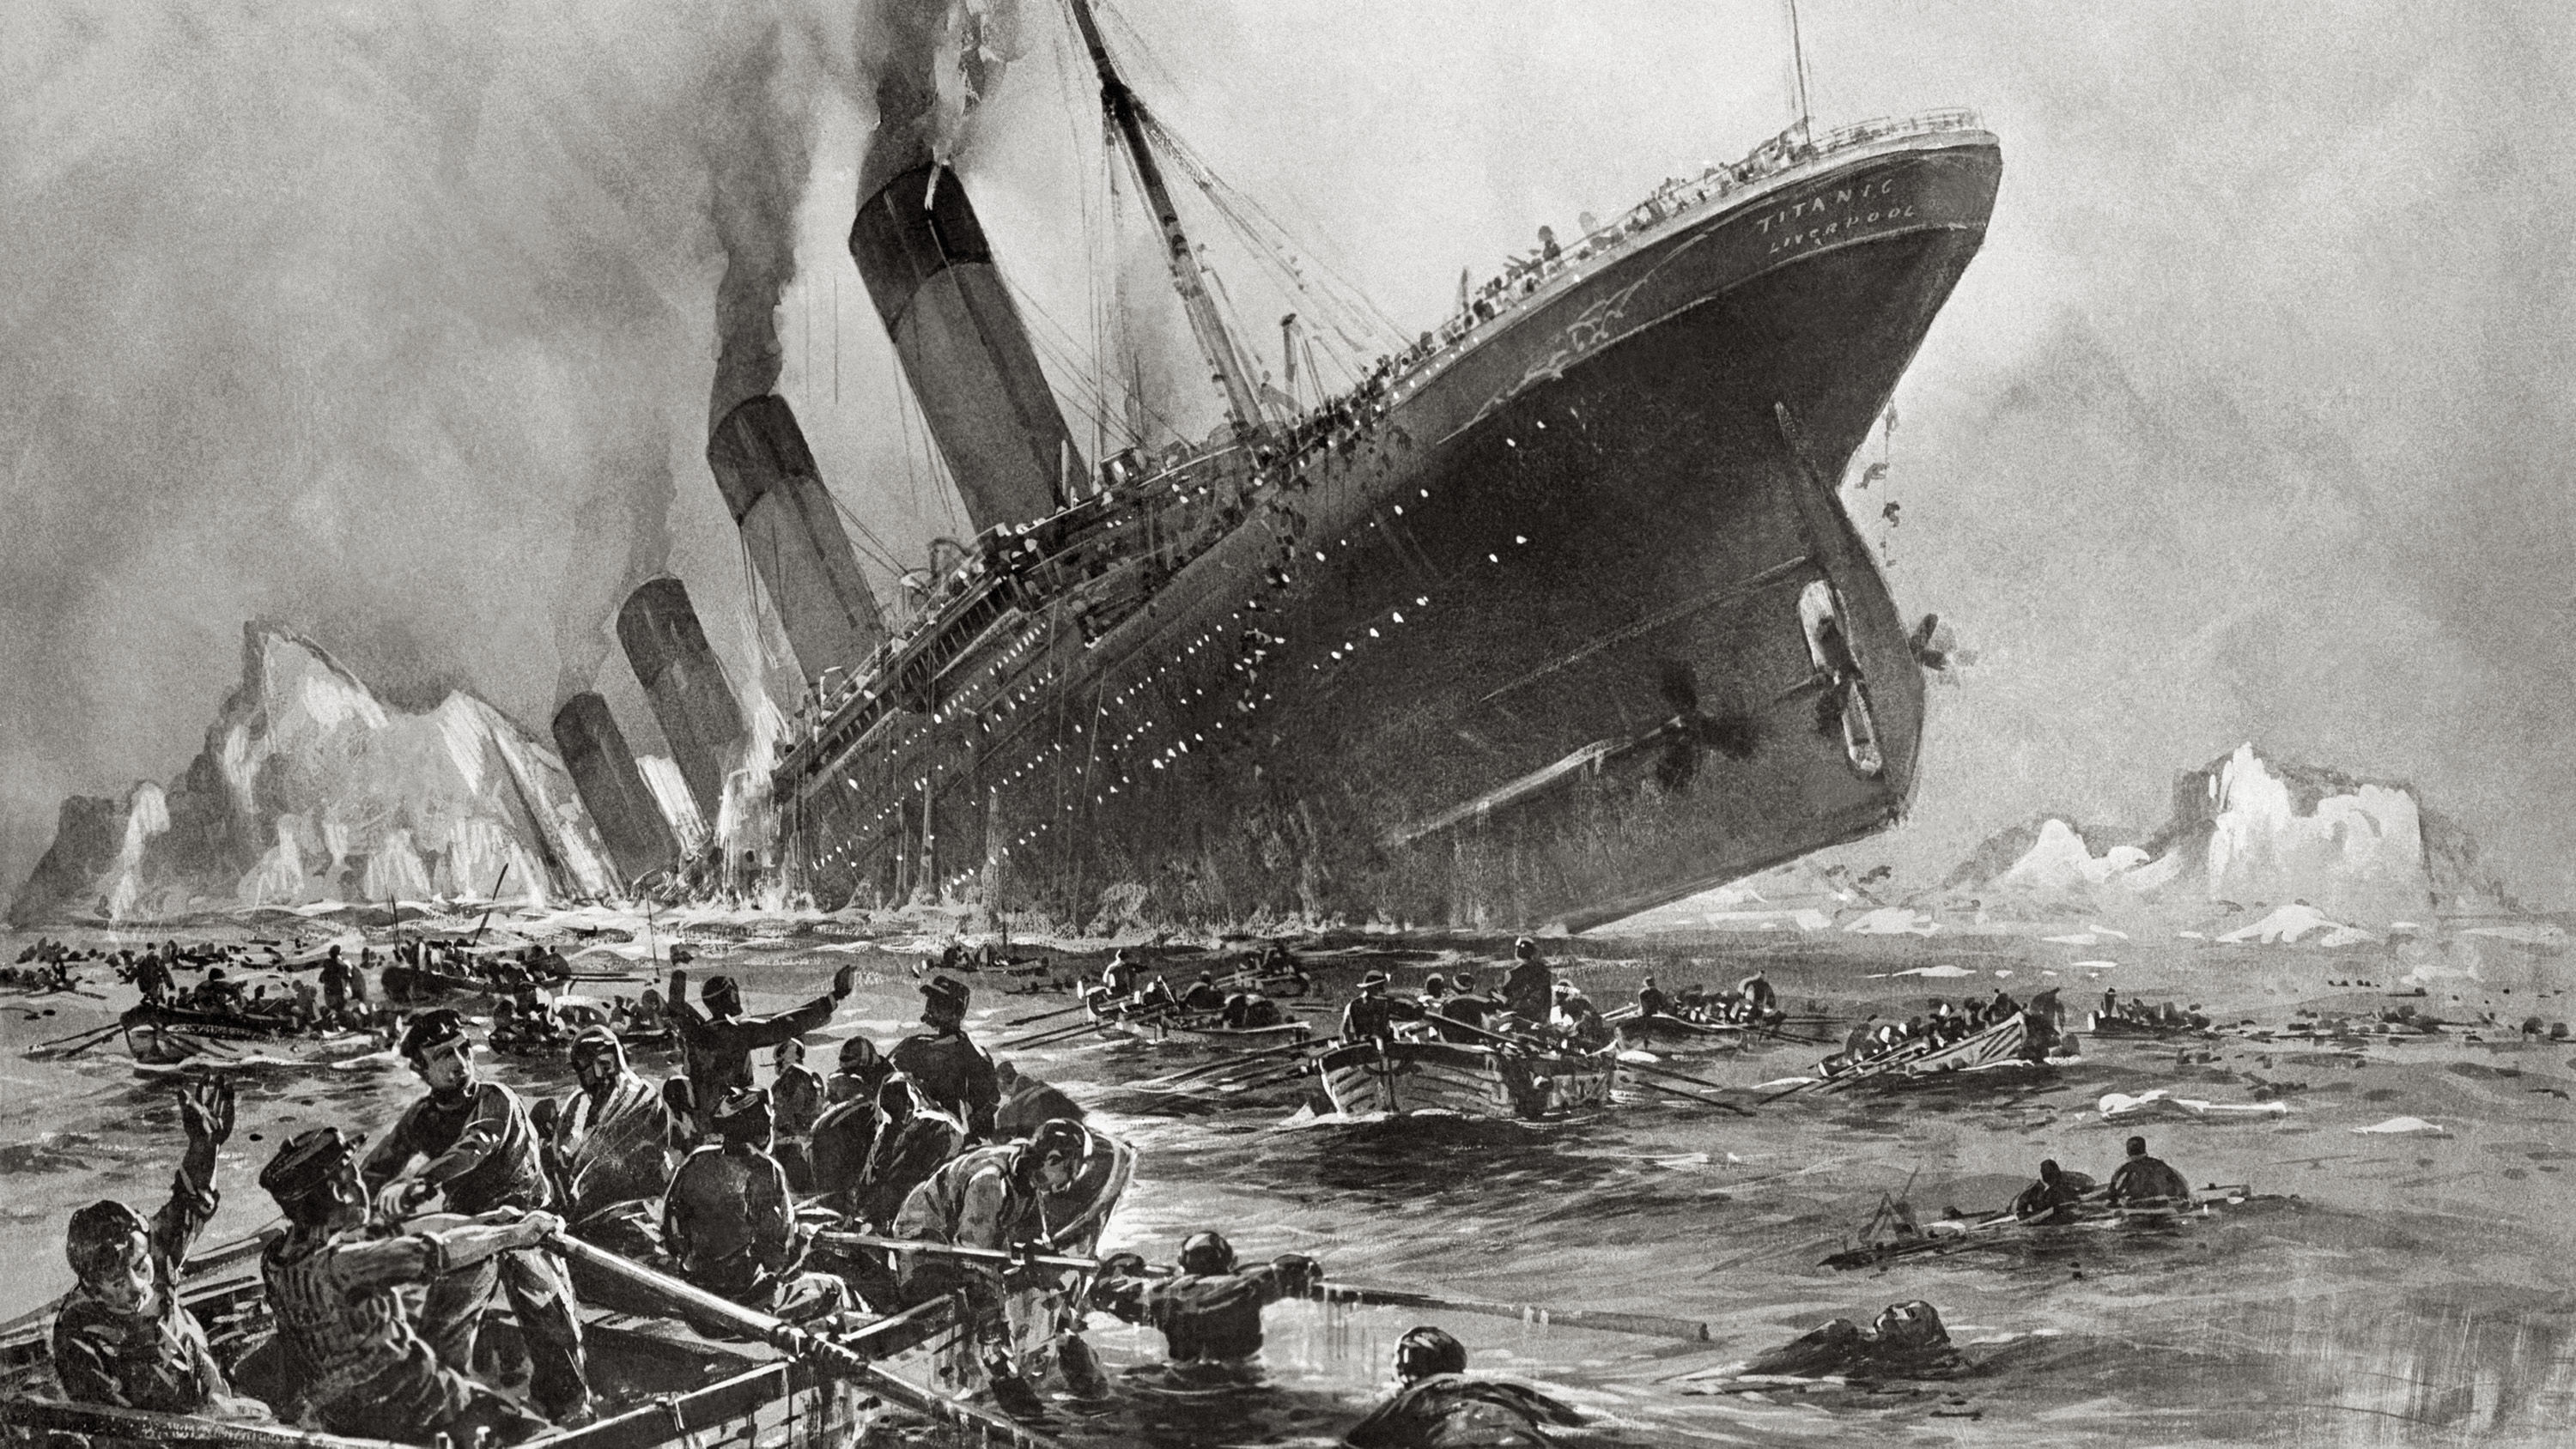 Titanic sinking, painting by Willy Stöwer